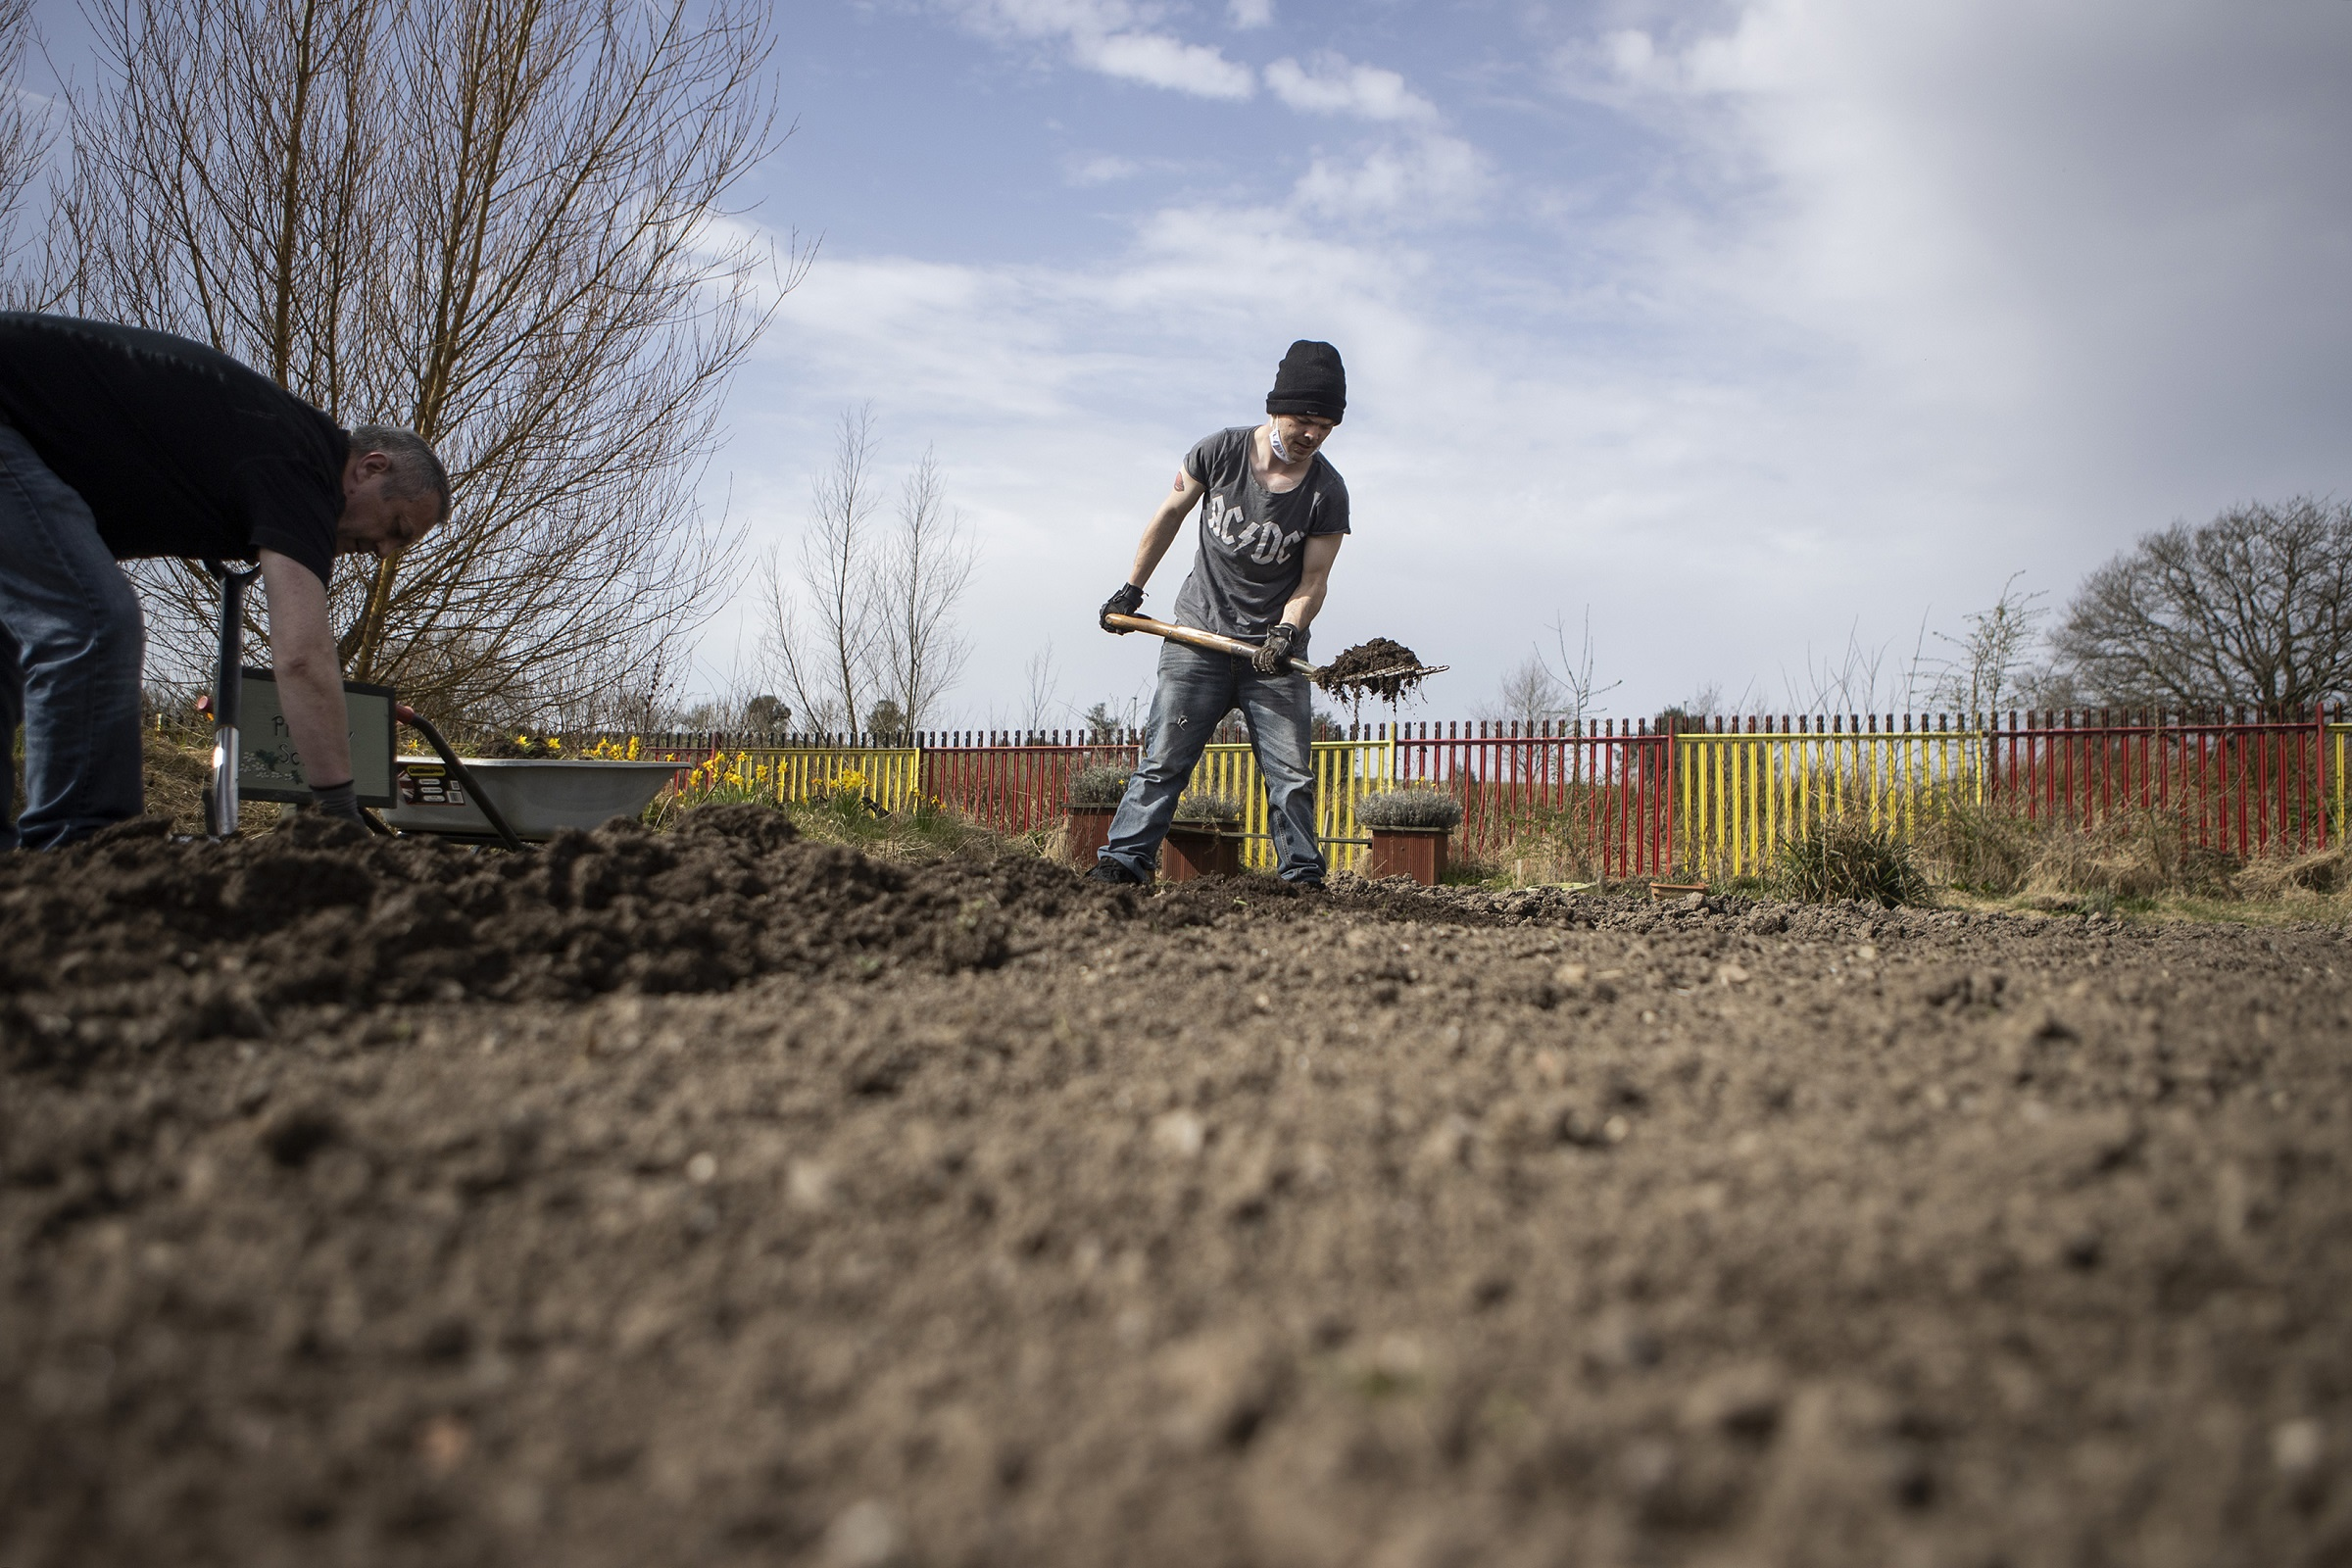 Young man shovels earth in an allotment as part of an outdoor activity run by Platfform, a mental health and social change charity in Wales